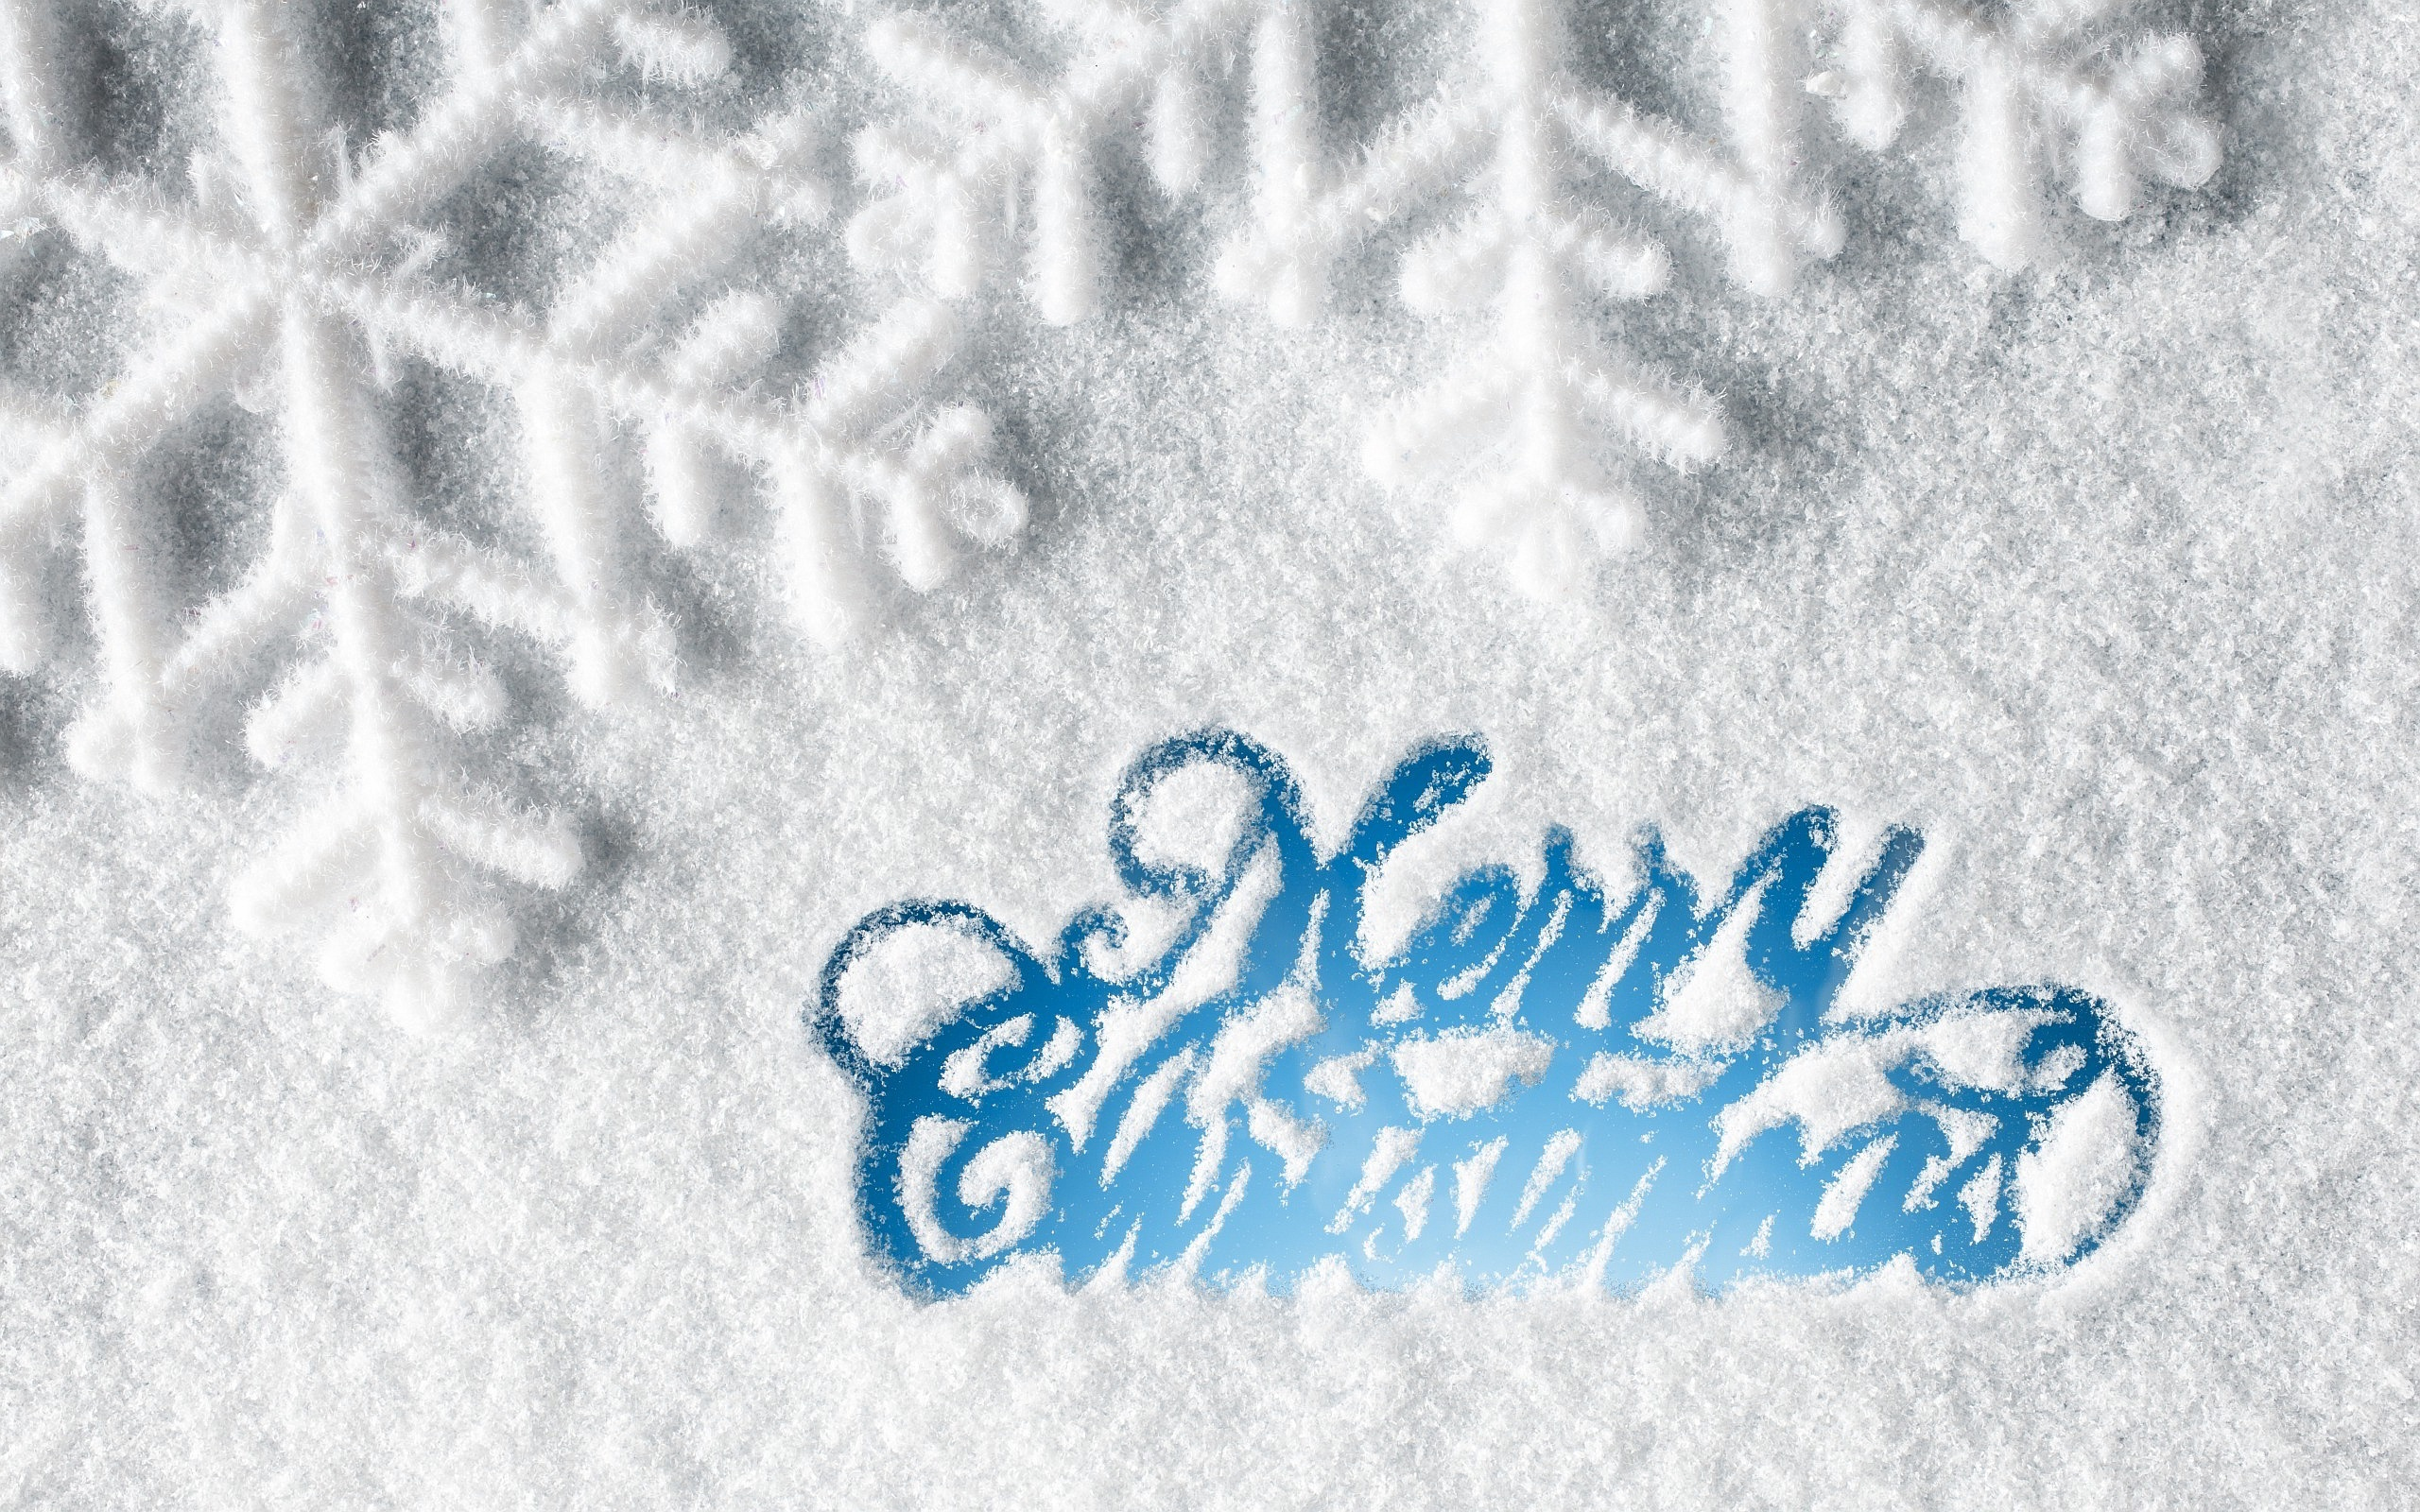 happy merry christmas text on snow hd wallpaper